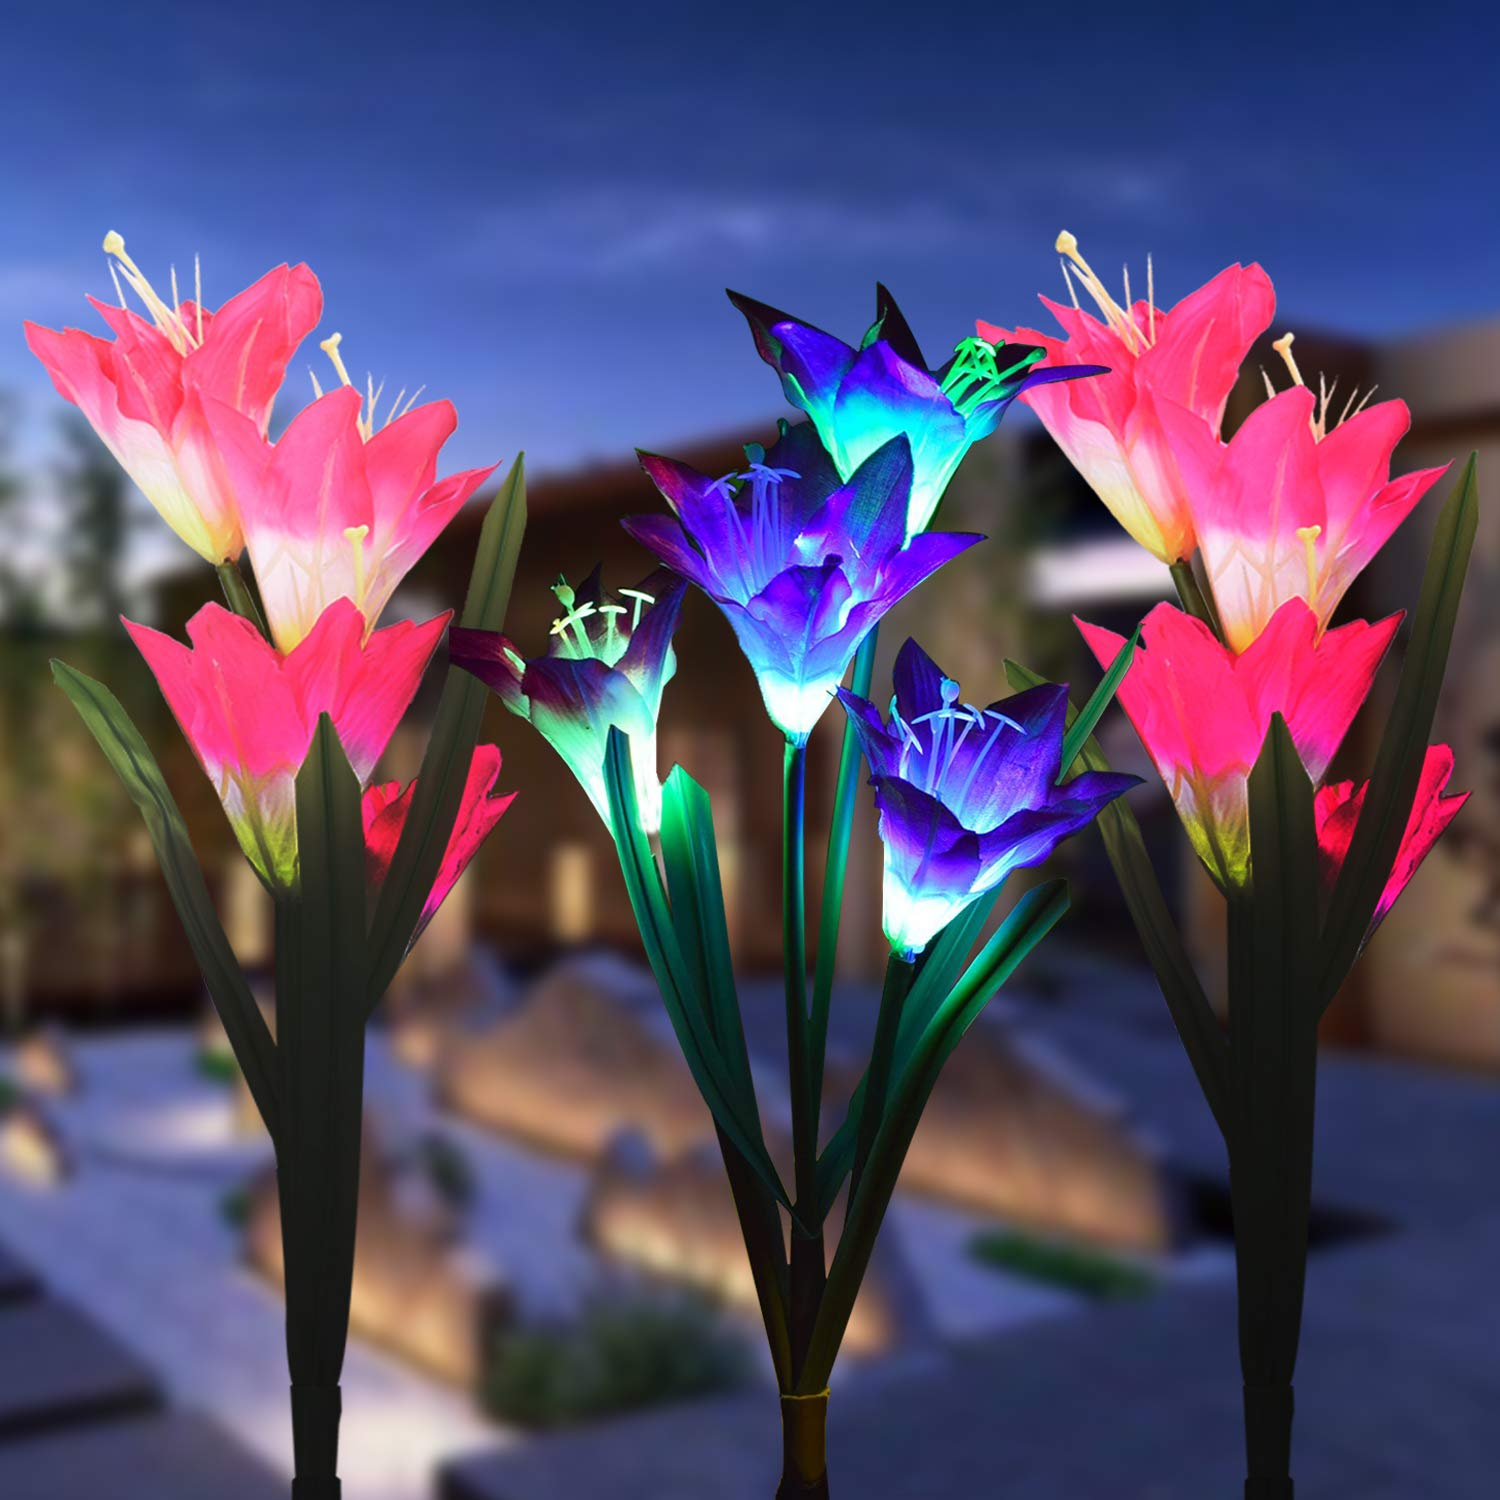 Outdoor Solar Garden Stake Lights, 3 Pack Solar Powered Flower Lights with 12 Lily Flower, Multi-Color Changing LED Solar Landscape Decorative Lights for Garden, Patio, Backyard(Solar Flower Lights) by WOHOME